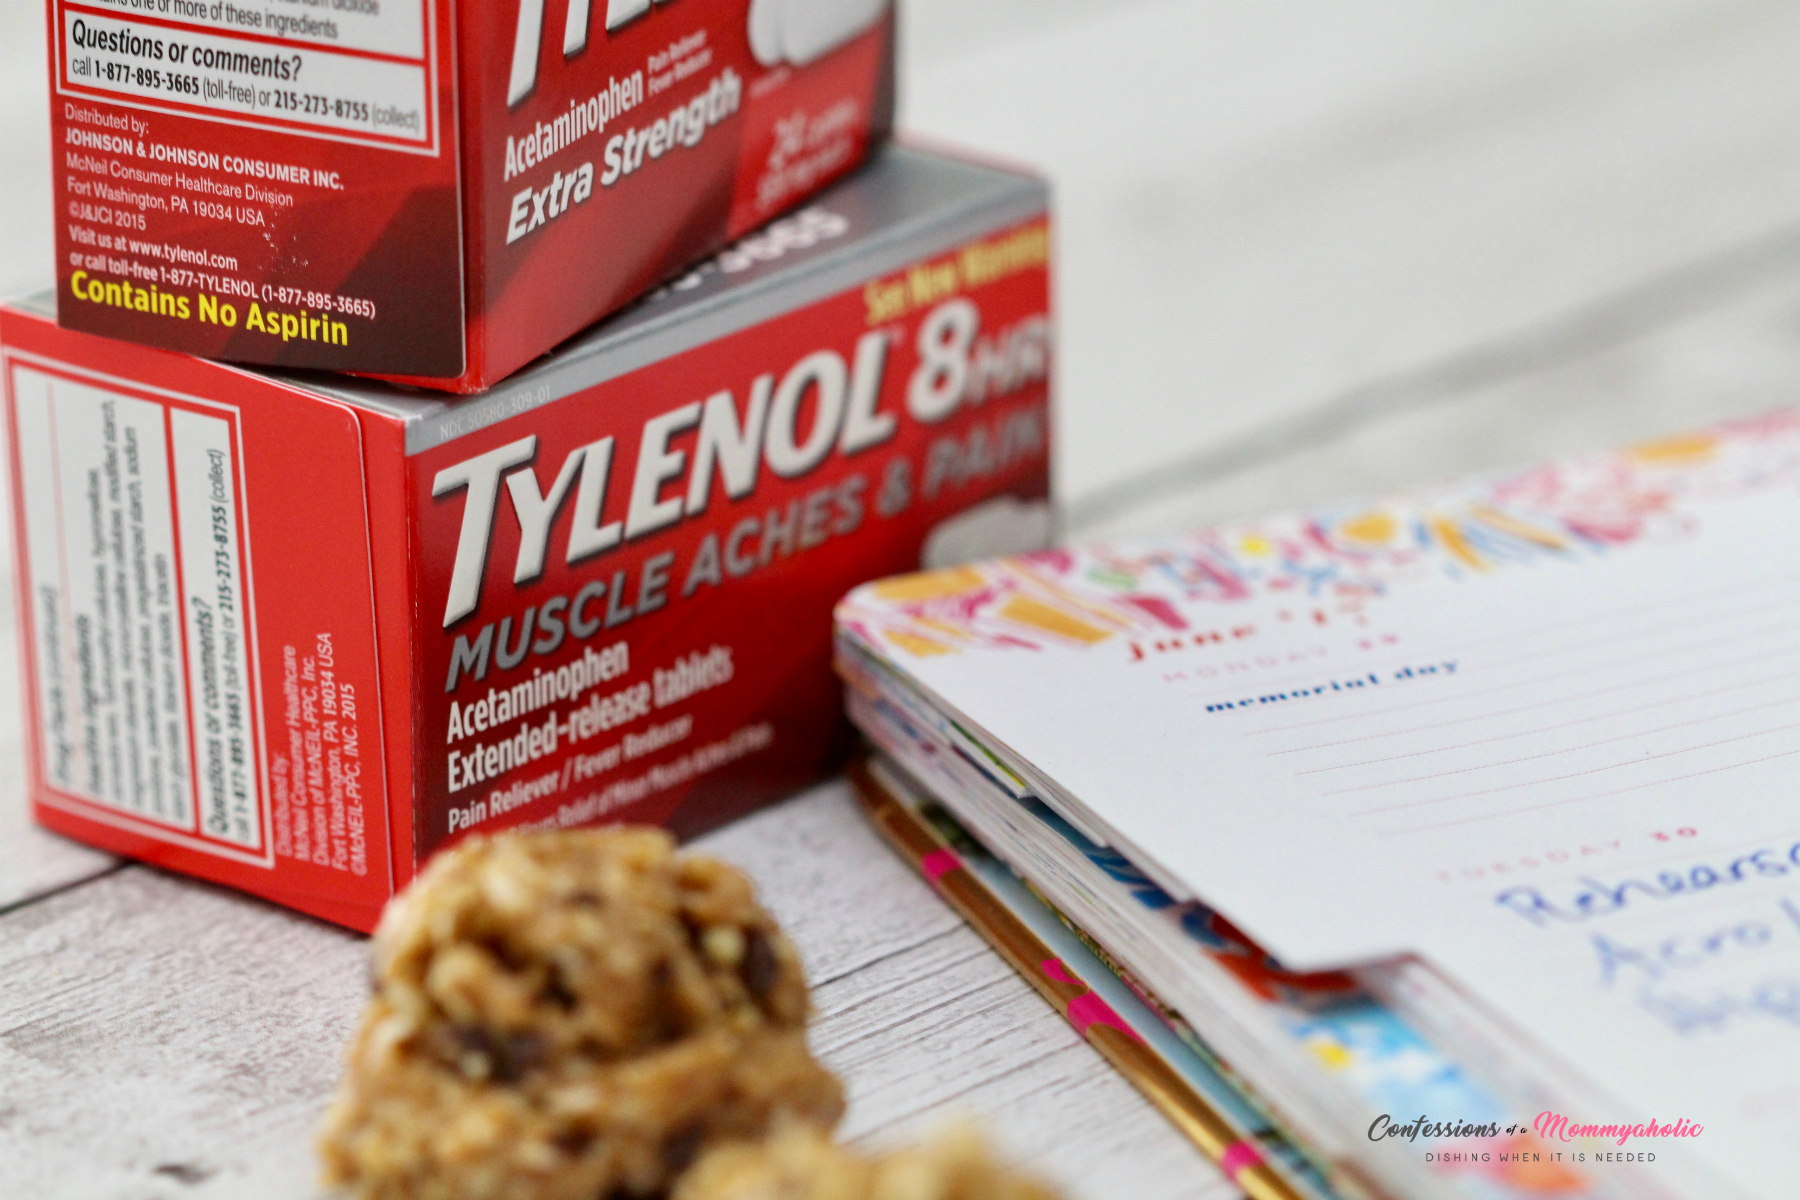 Planner Tylenol and Cookie Ball